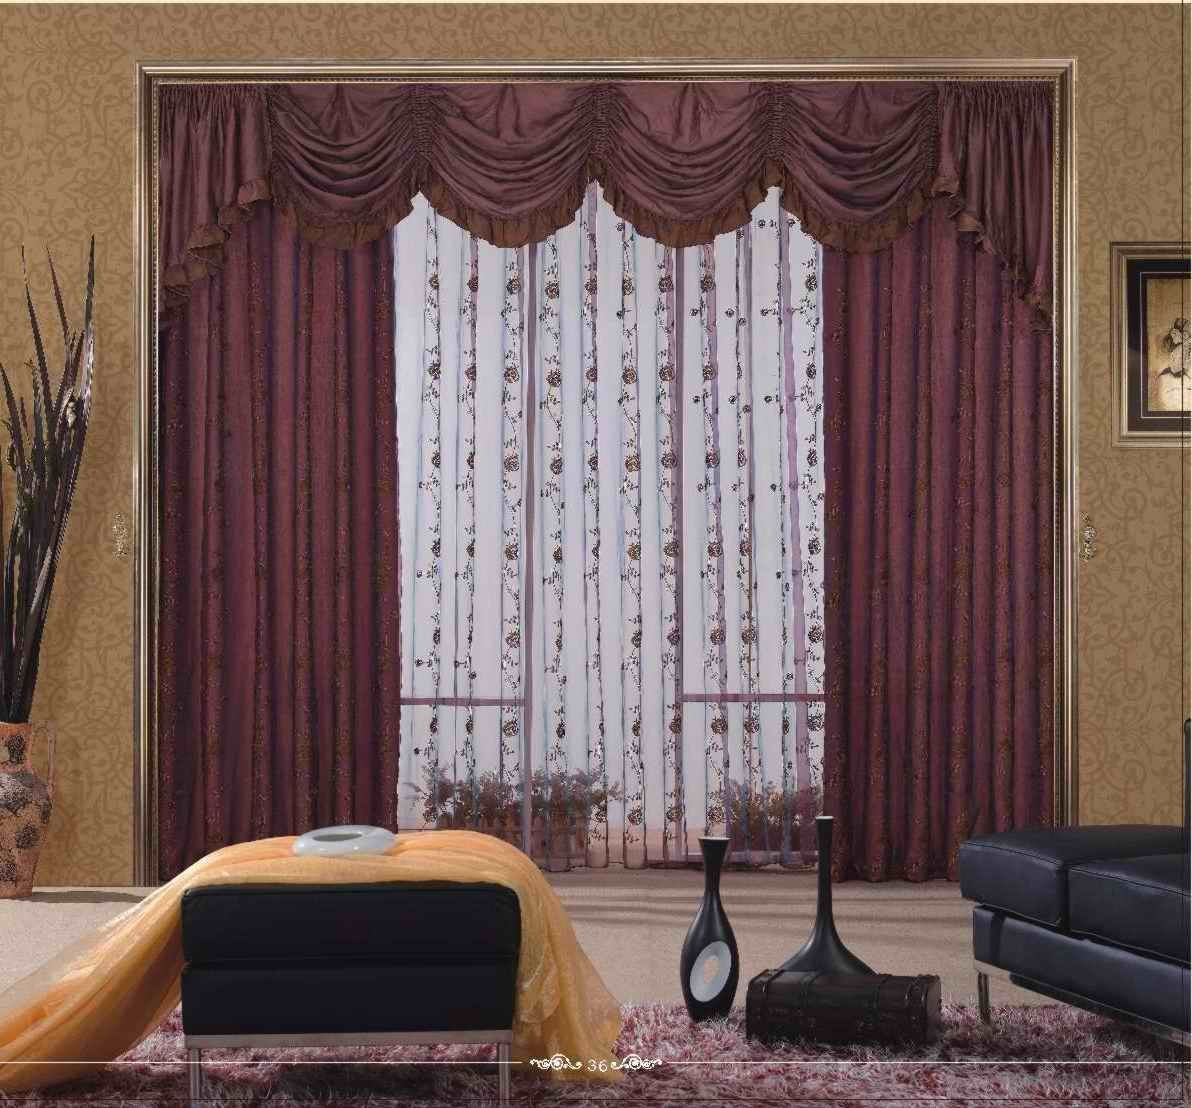 living room curtains cheap. Vintage Living Room Curtains Designing Ideas With Triple Layers Such As  Ruffles Thick Maroon Curtain And White Decorative Curta Arab Style Buy European